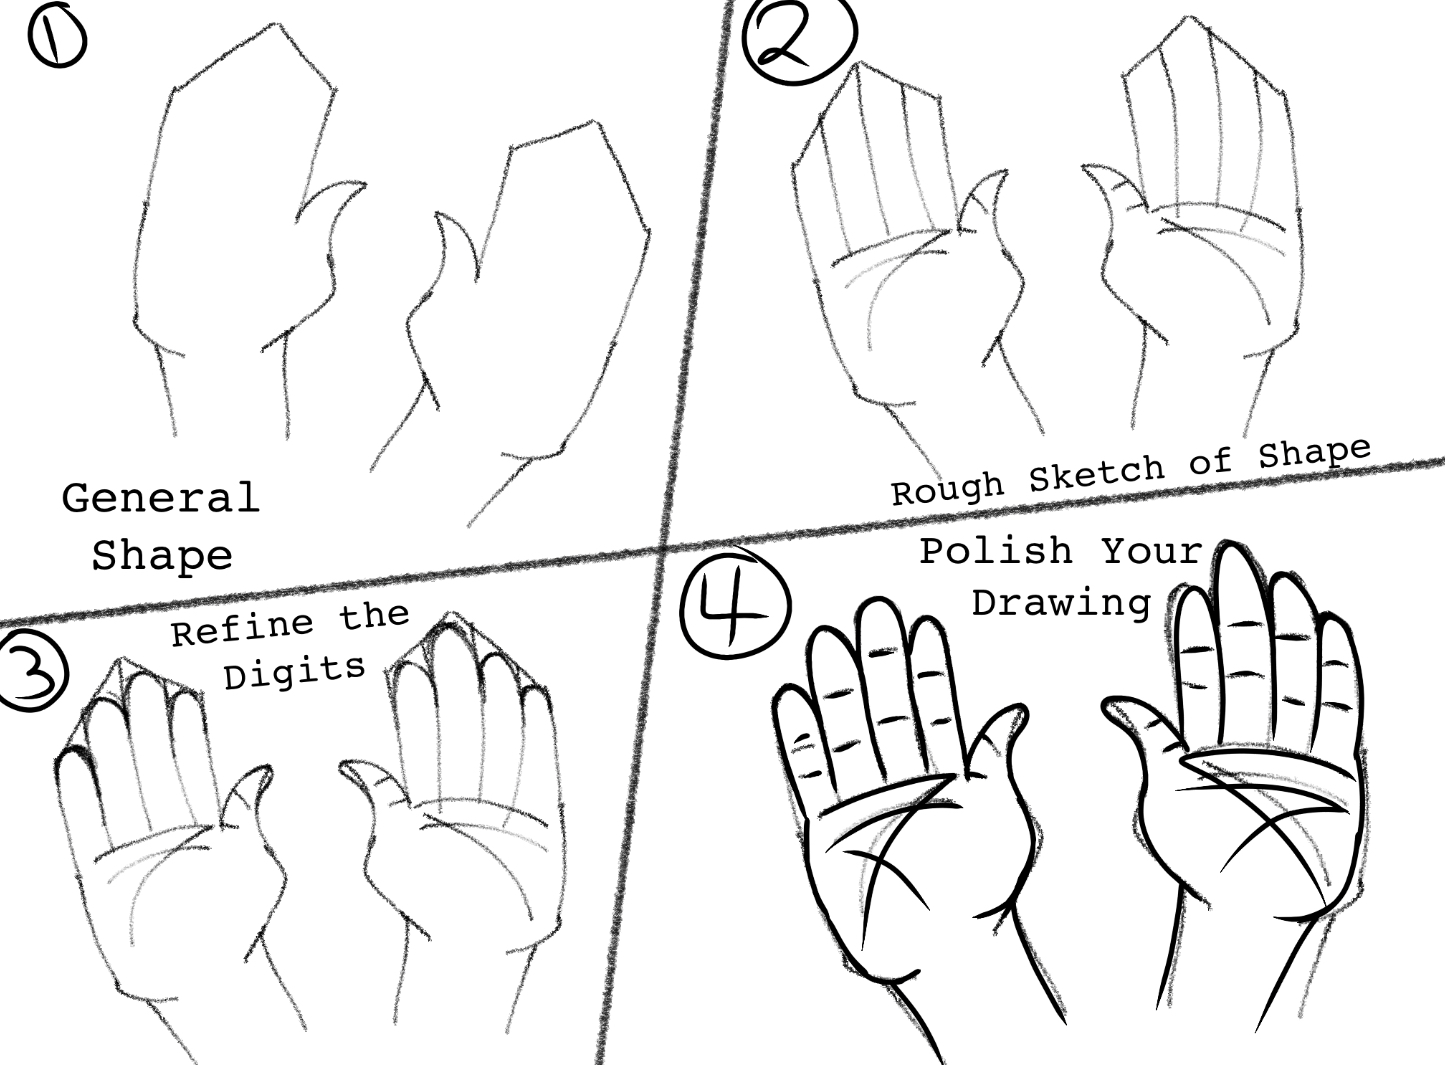 Drawing+tips+from+a+Gauntlet+artist